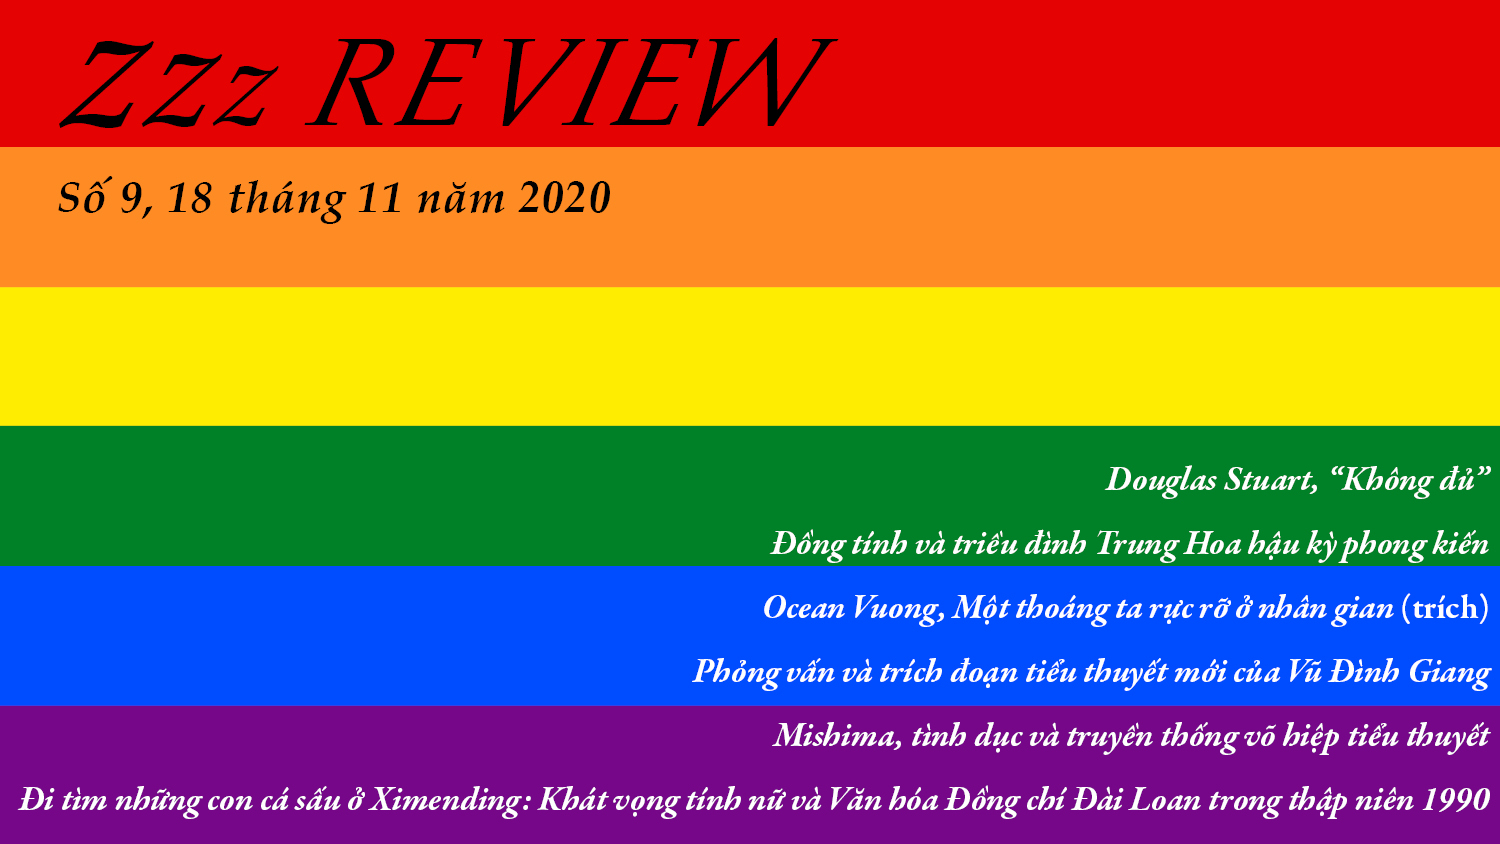 Zzz Review số 9: LGBTQ+